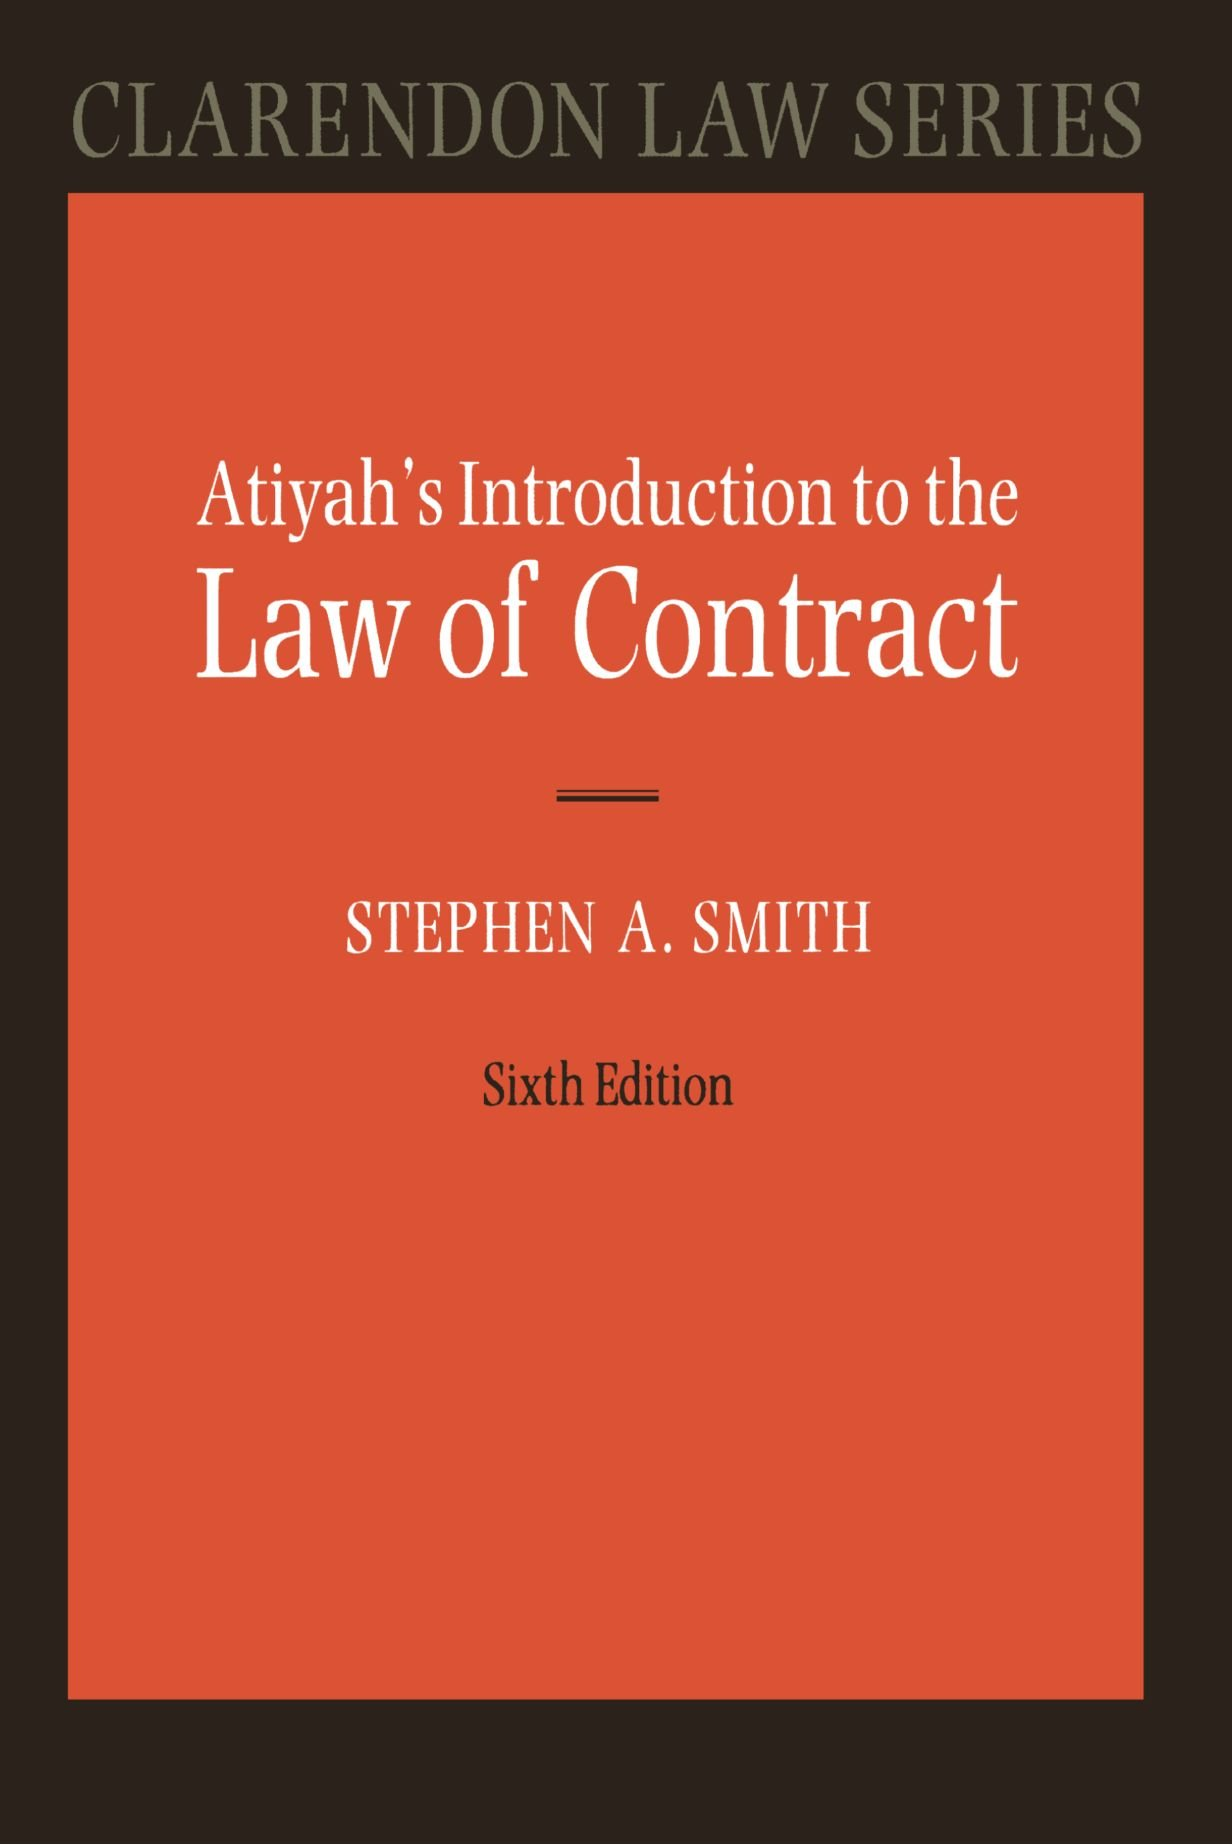 Atiyah's Introduction To The Law Of Contract  Clarendon Law Series